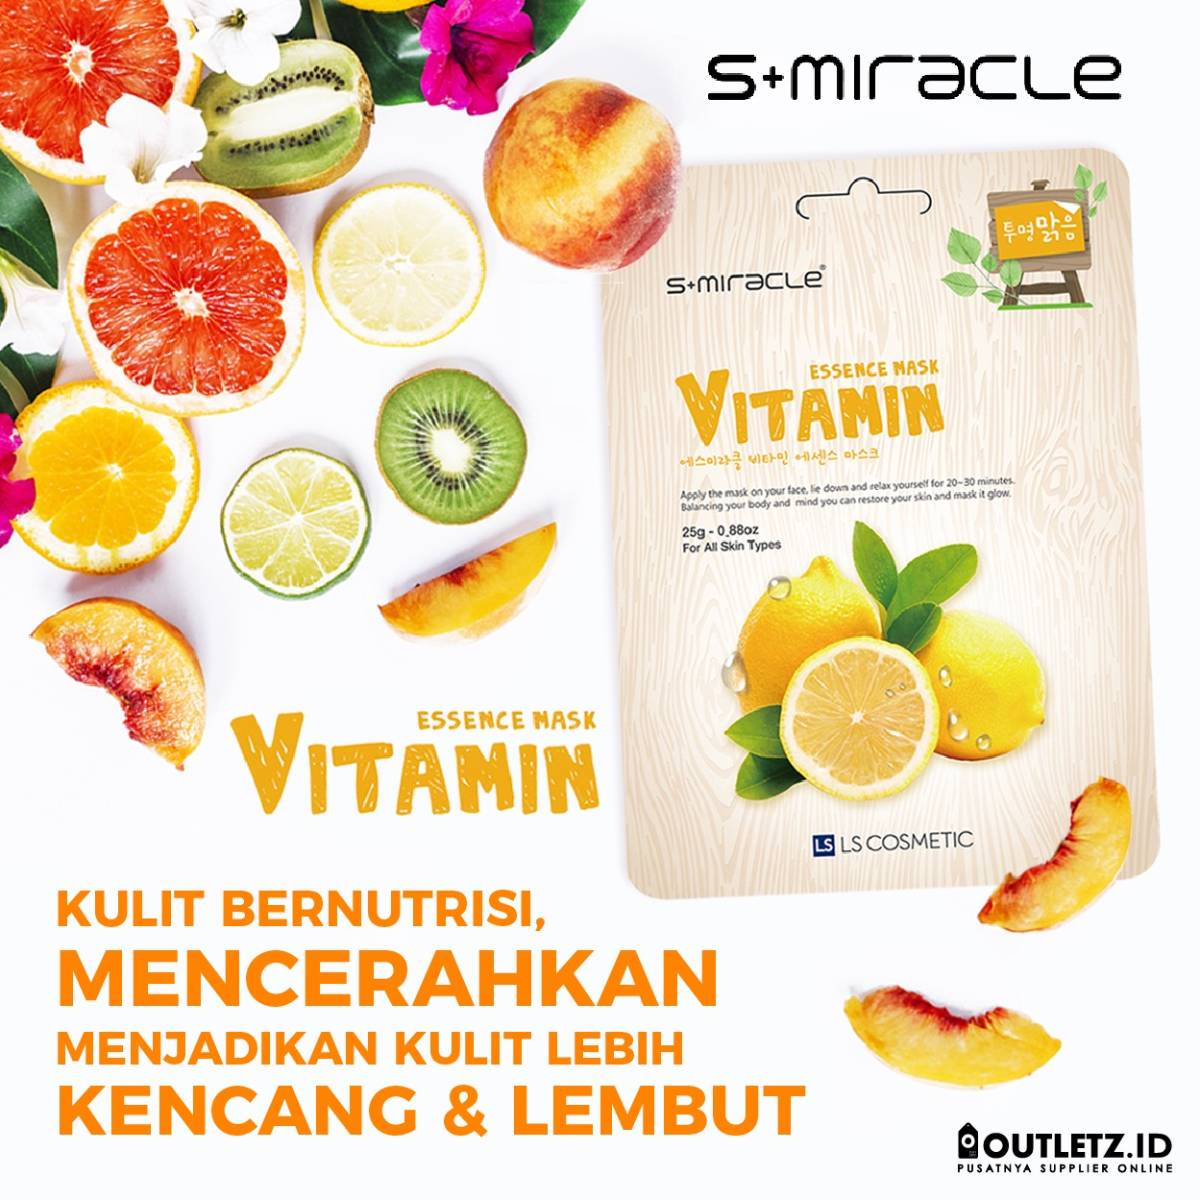 Masker Wajah Korea Vitamin - S+miracle Vitamin Essence Mask0